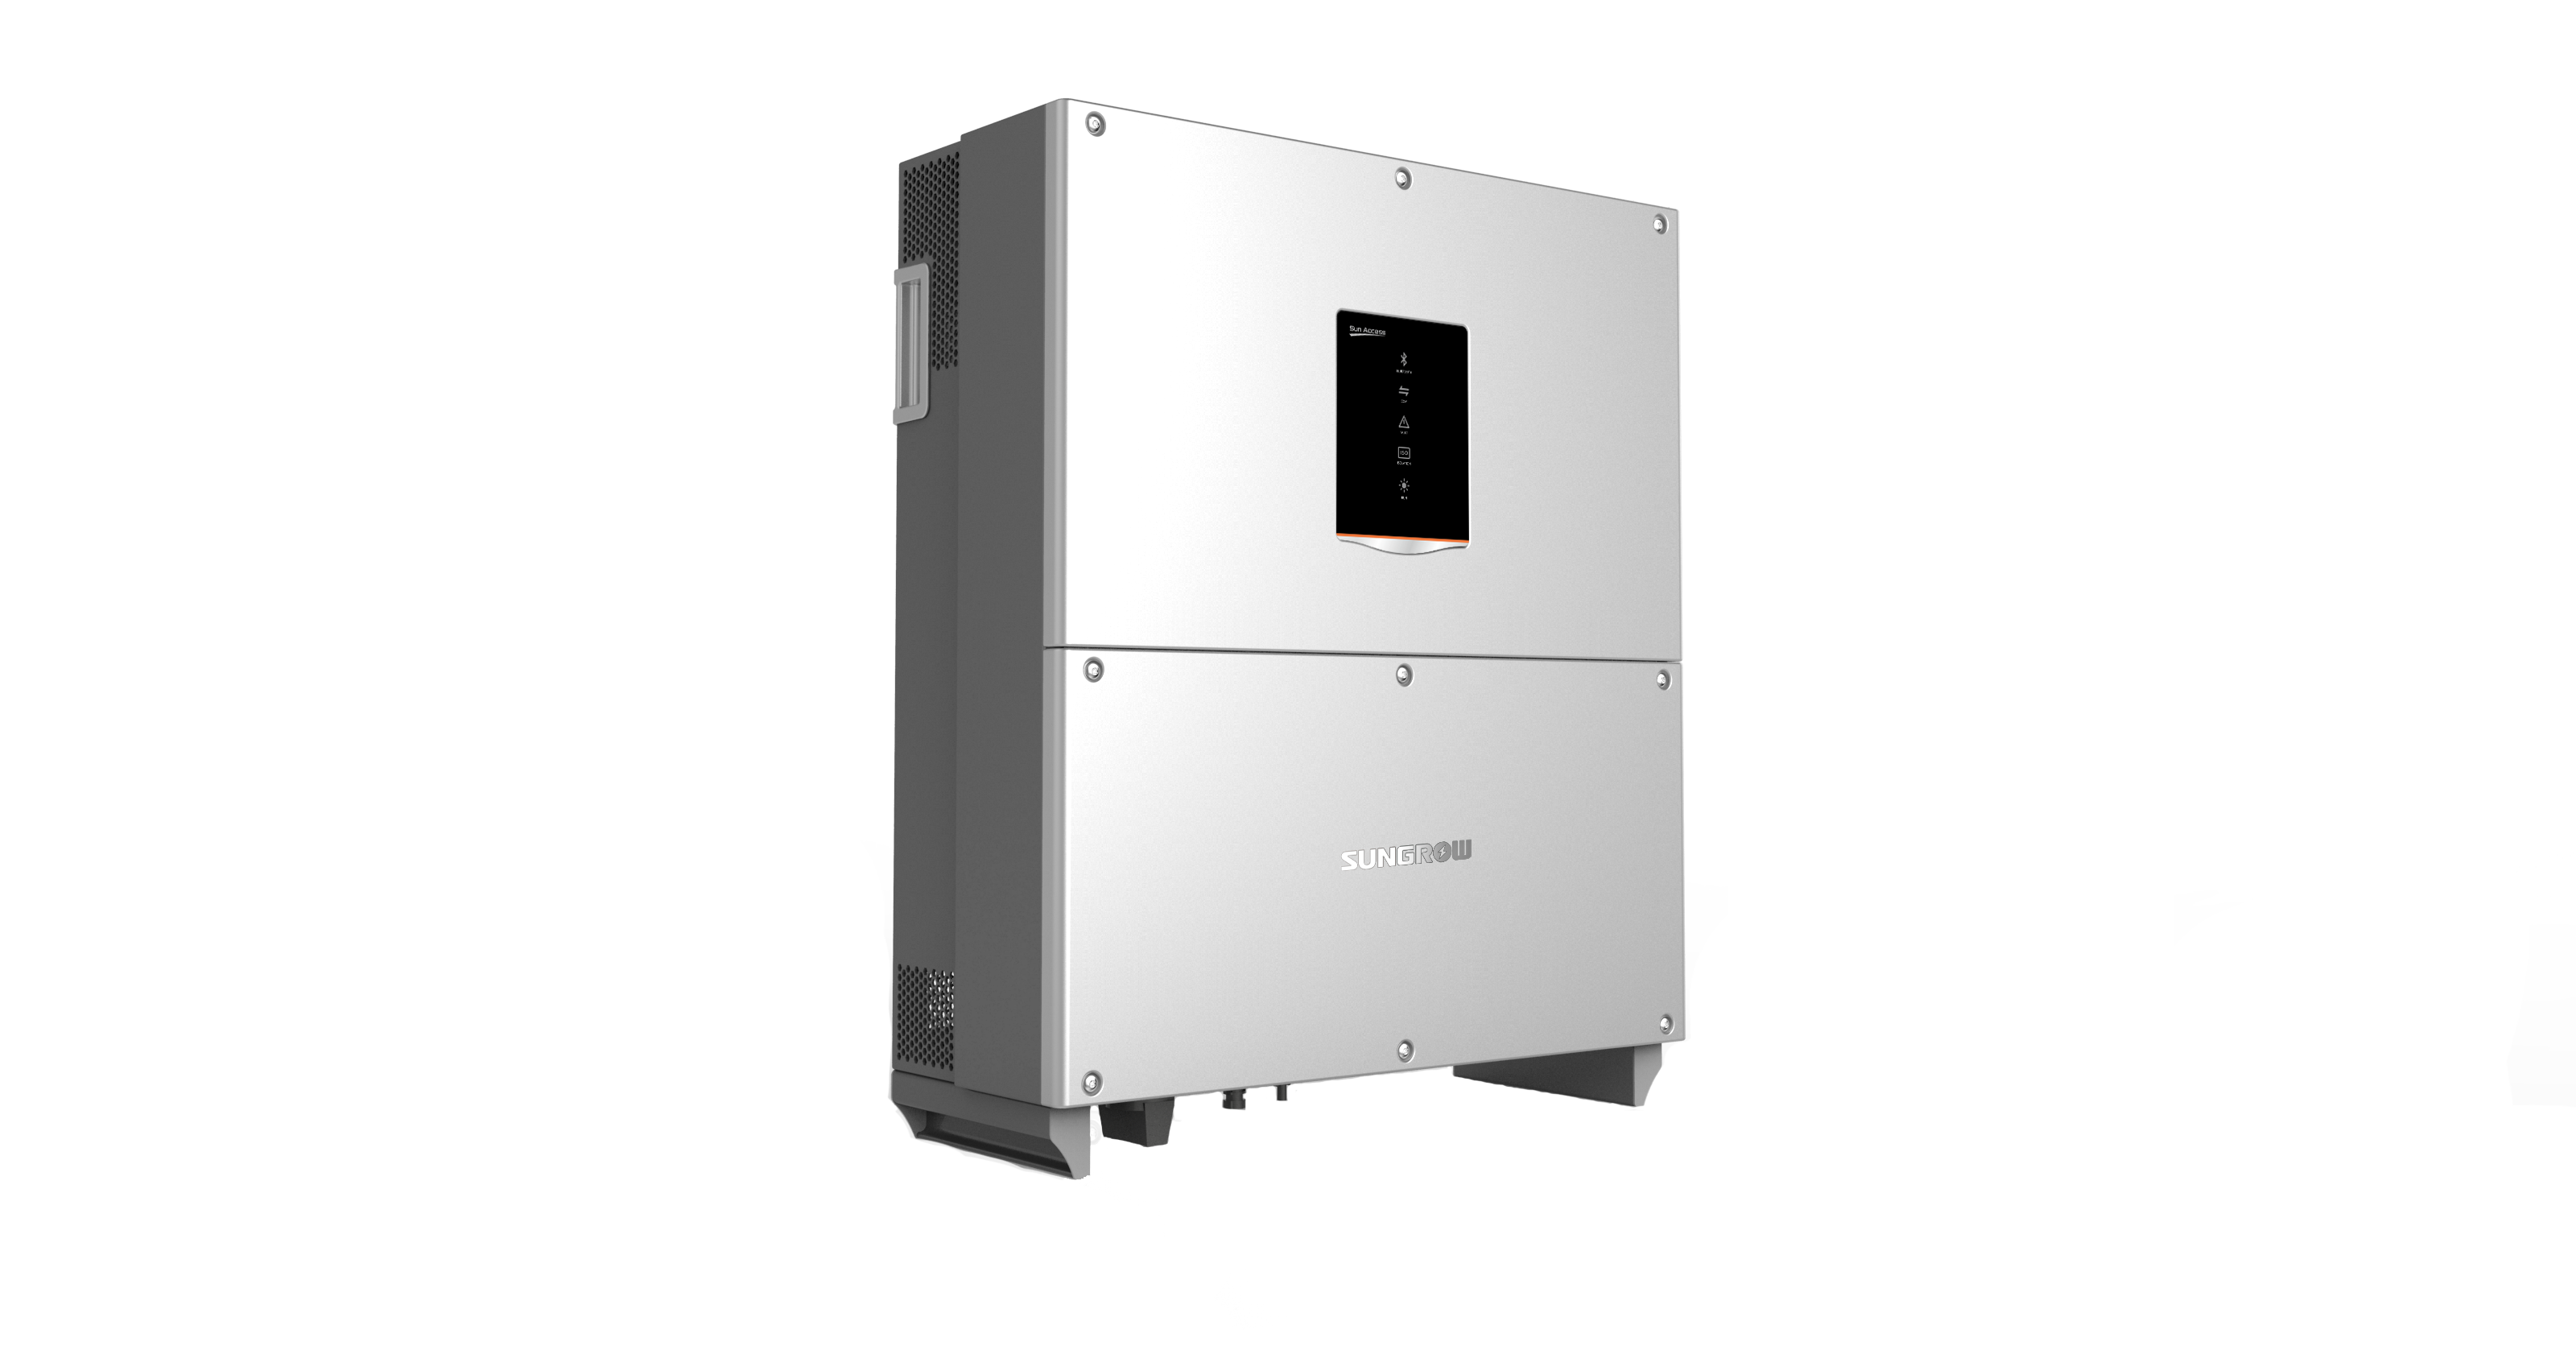 The SG125HV comes with Sungrow's patented five-level topology design, which enables the inverter to lift the maximum efficiency up to over 98.9%. Image: Sungrow